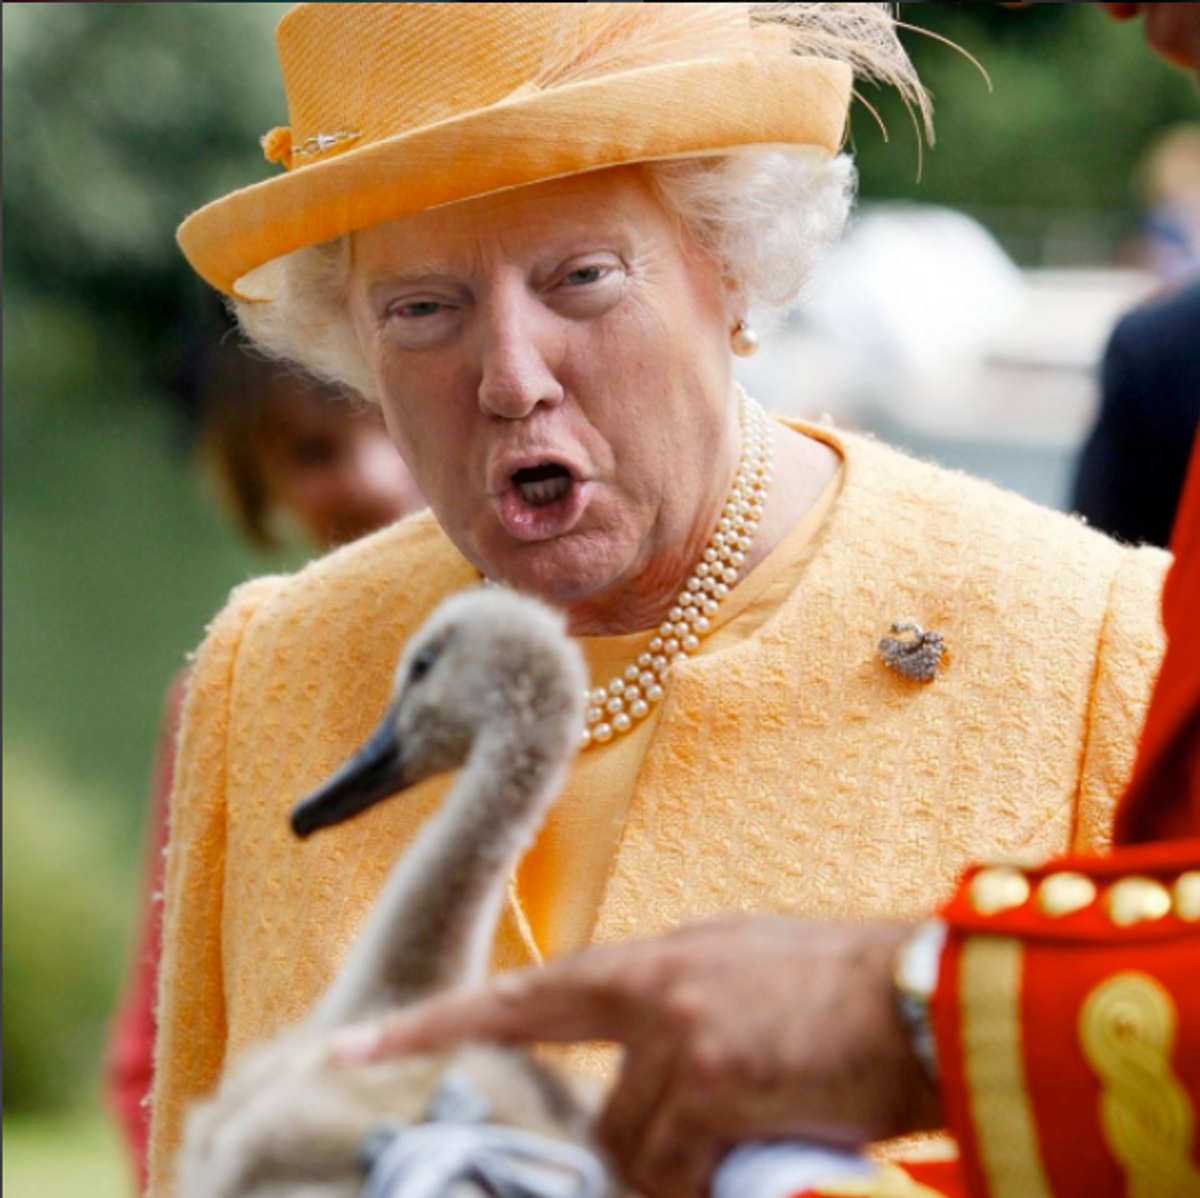 Someone's Been Photoshopping Trump's Face on the Queen